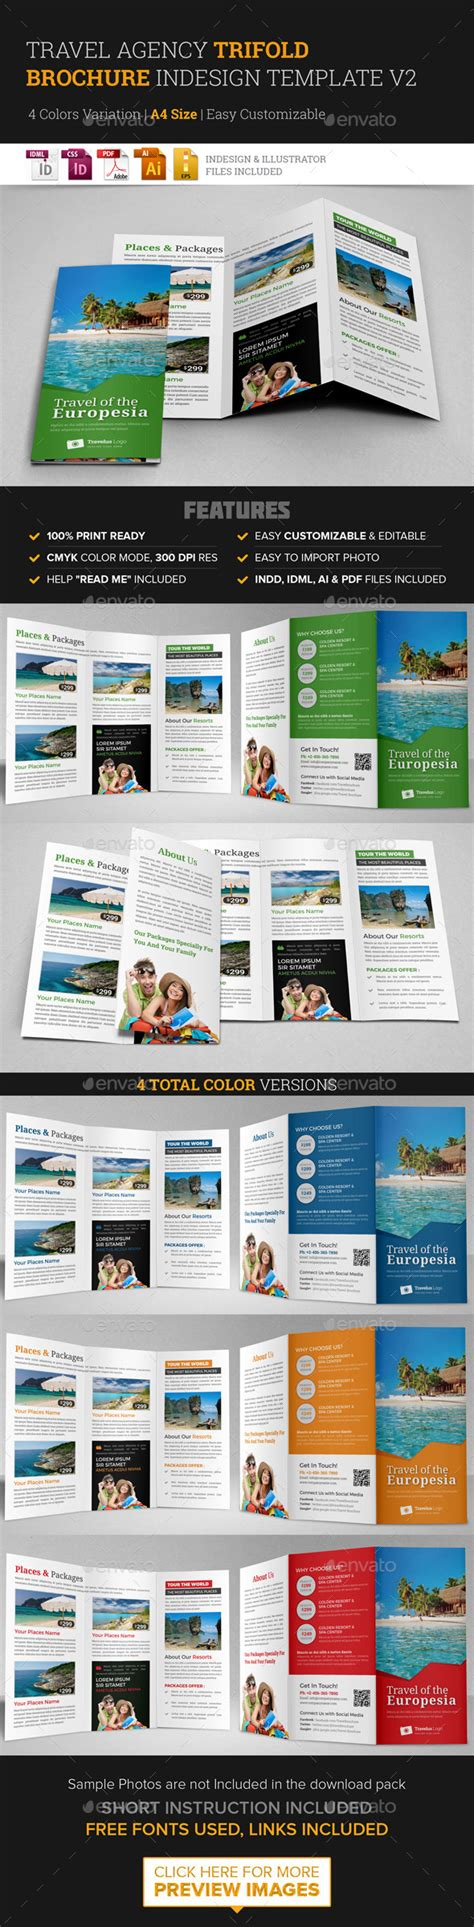 trifold brochure indesign template travel trifold brochure indesign template v2 by